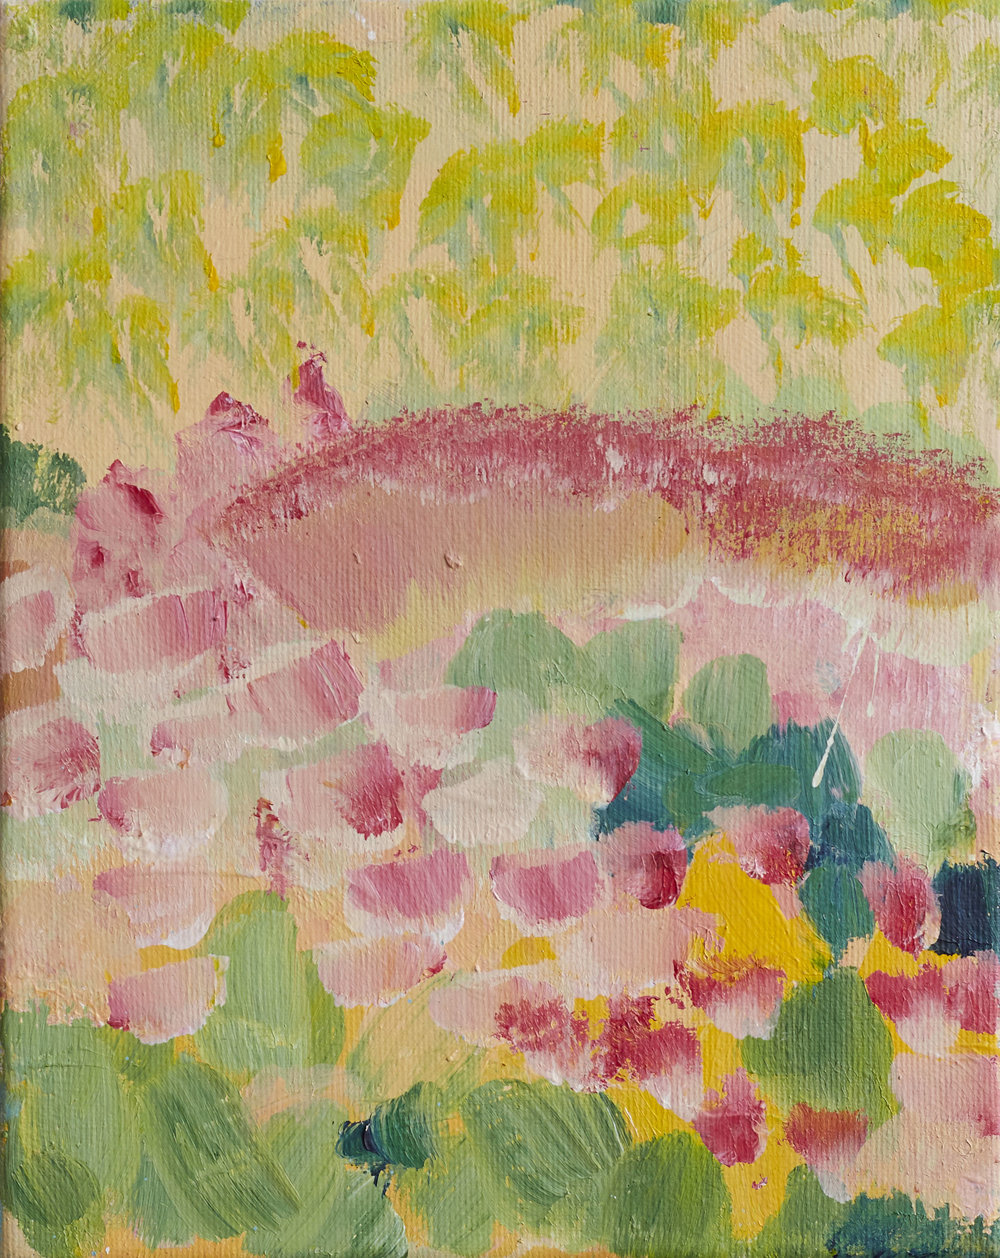 'The Rose Garden' 20cmx18cm acrylic on canvas